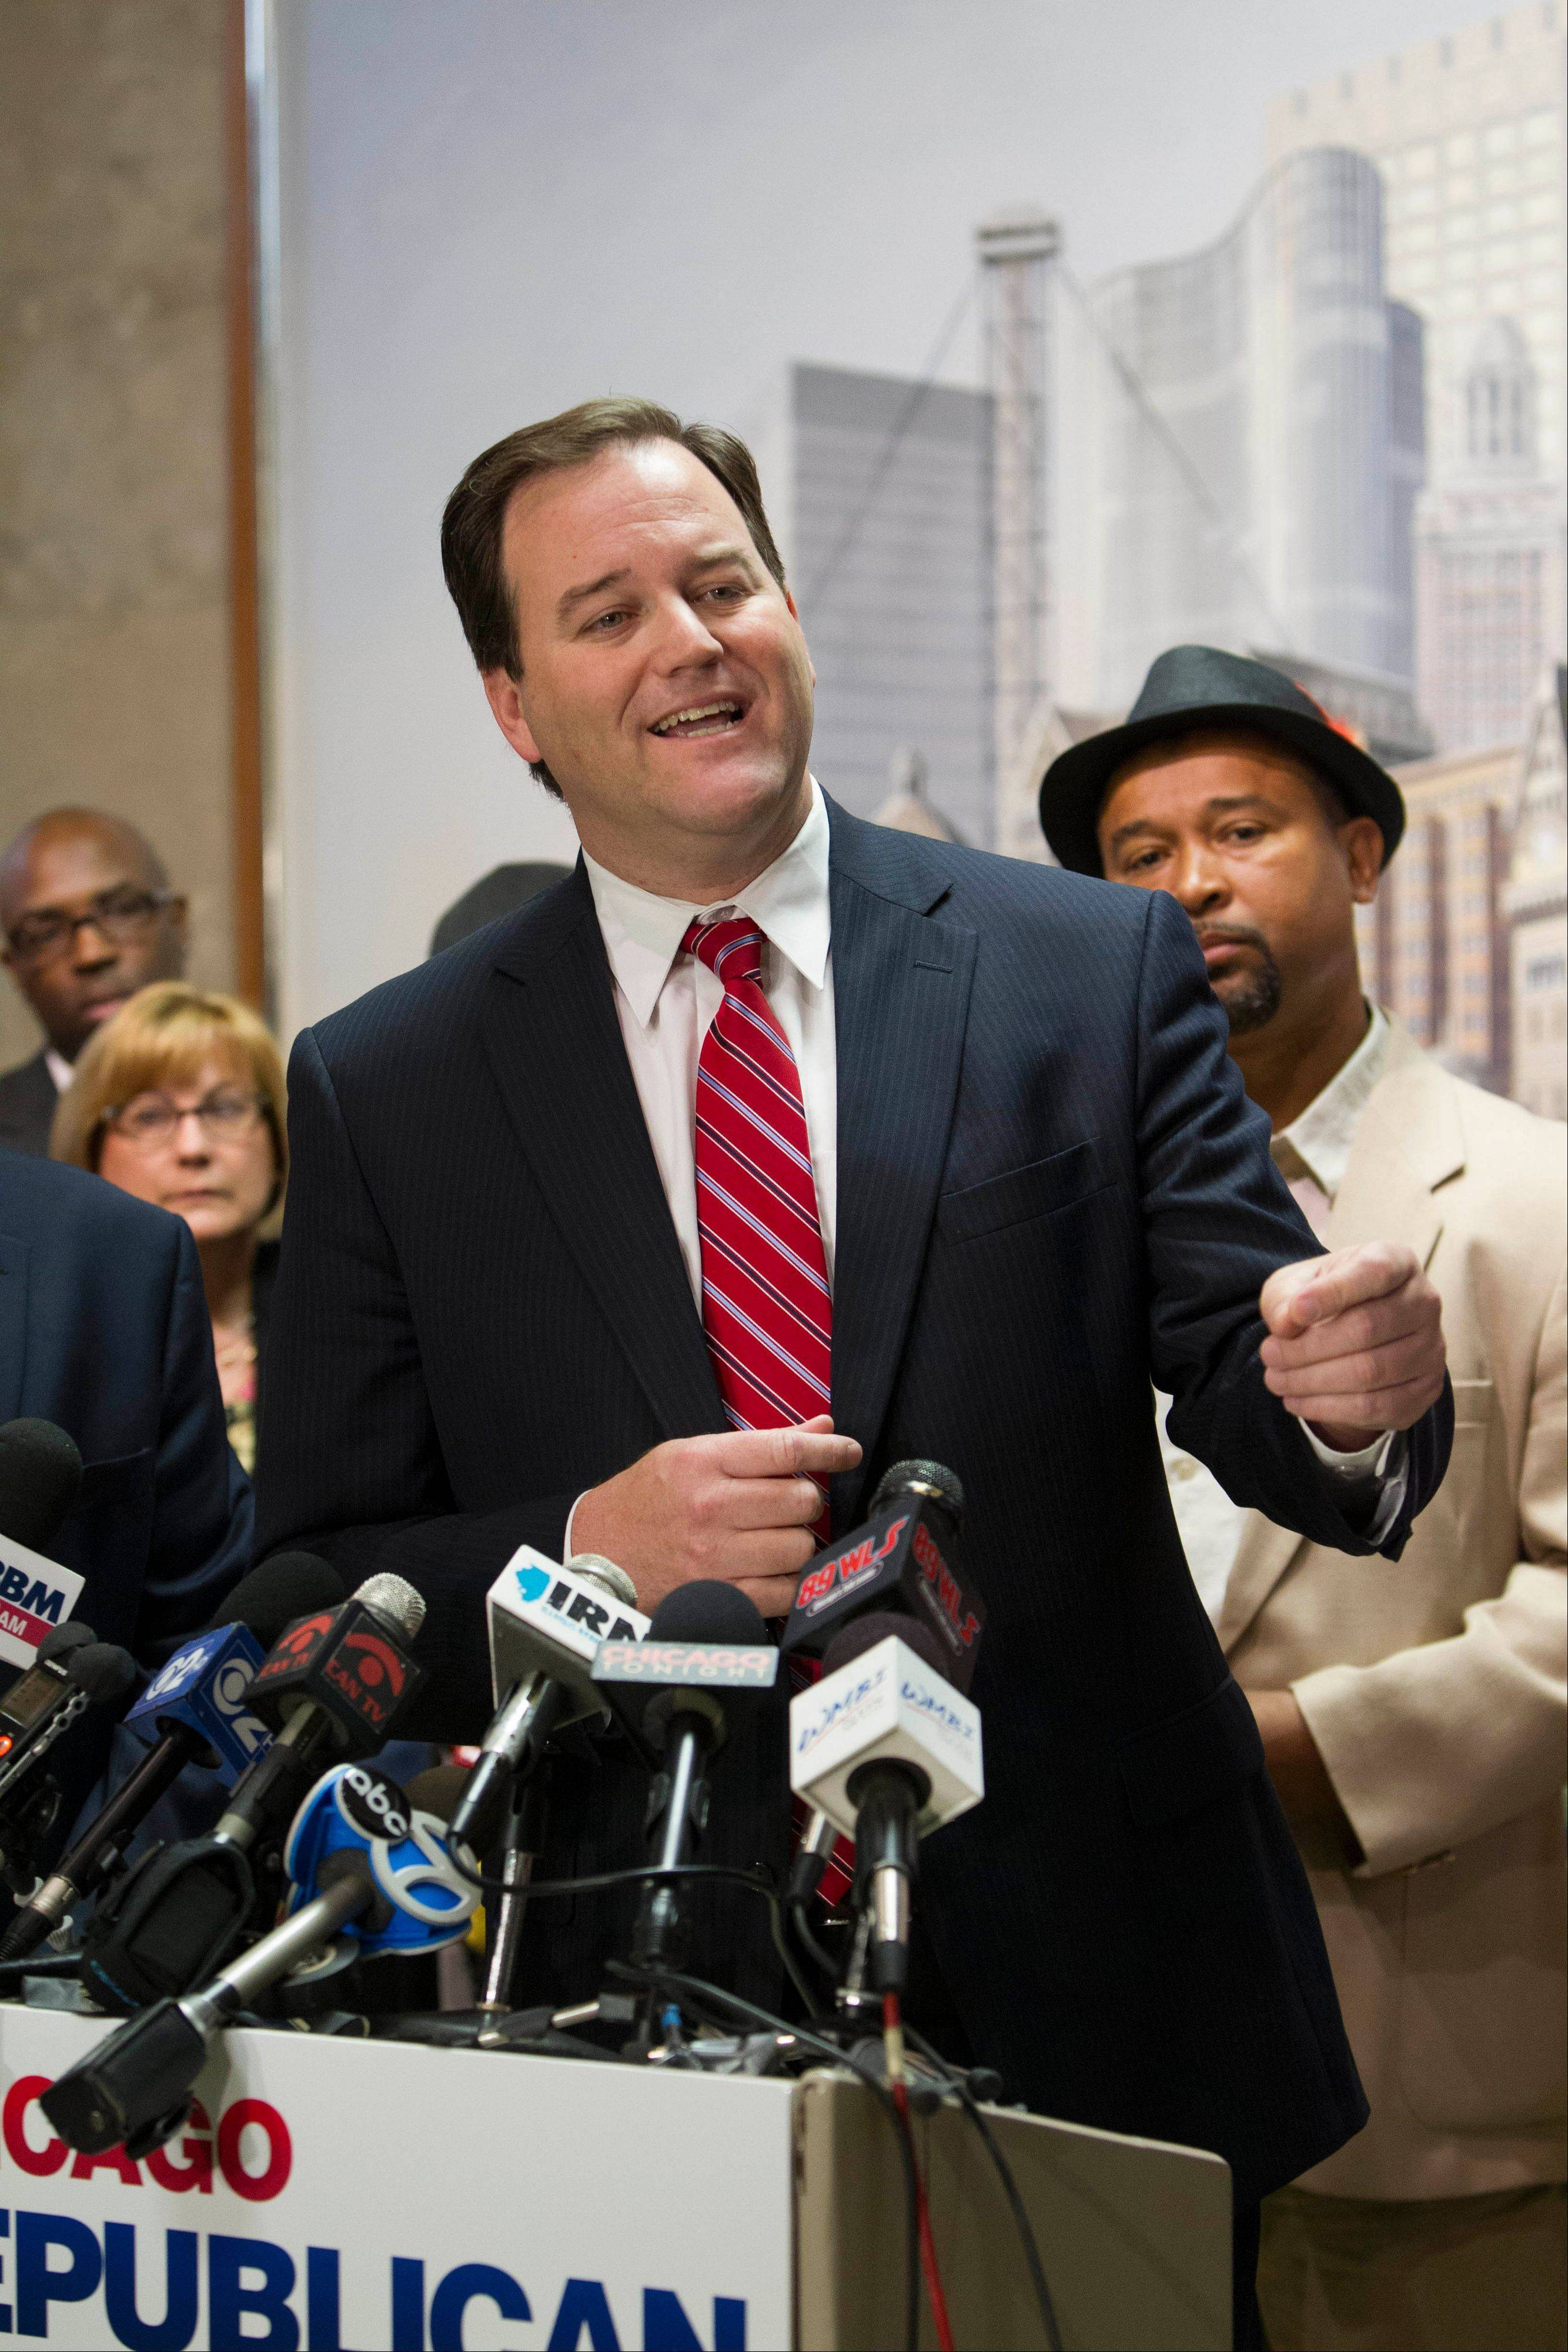 State Sen. Matt Murphy, a Palatine Republican, speaks at a news conference Tuesday in Chicago where the Chicago Republican Party announced it was launching a candidate recruitment program and advertising campaign in the Democratic-dominated city.